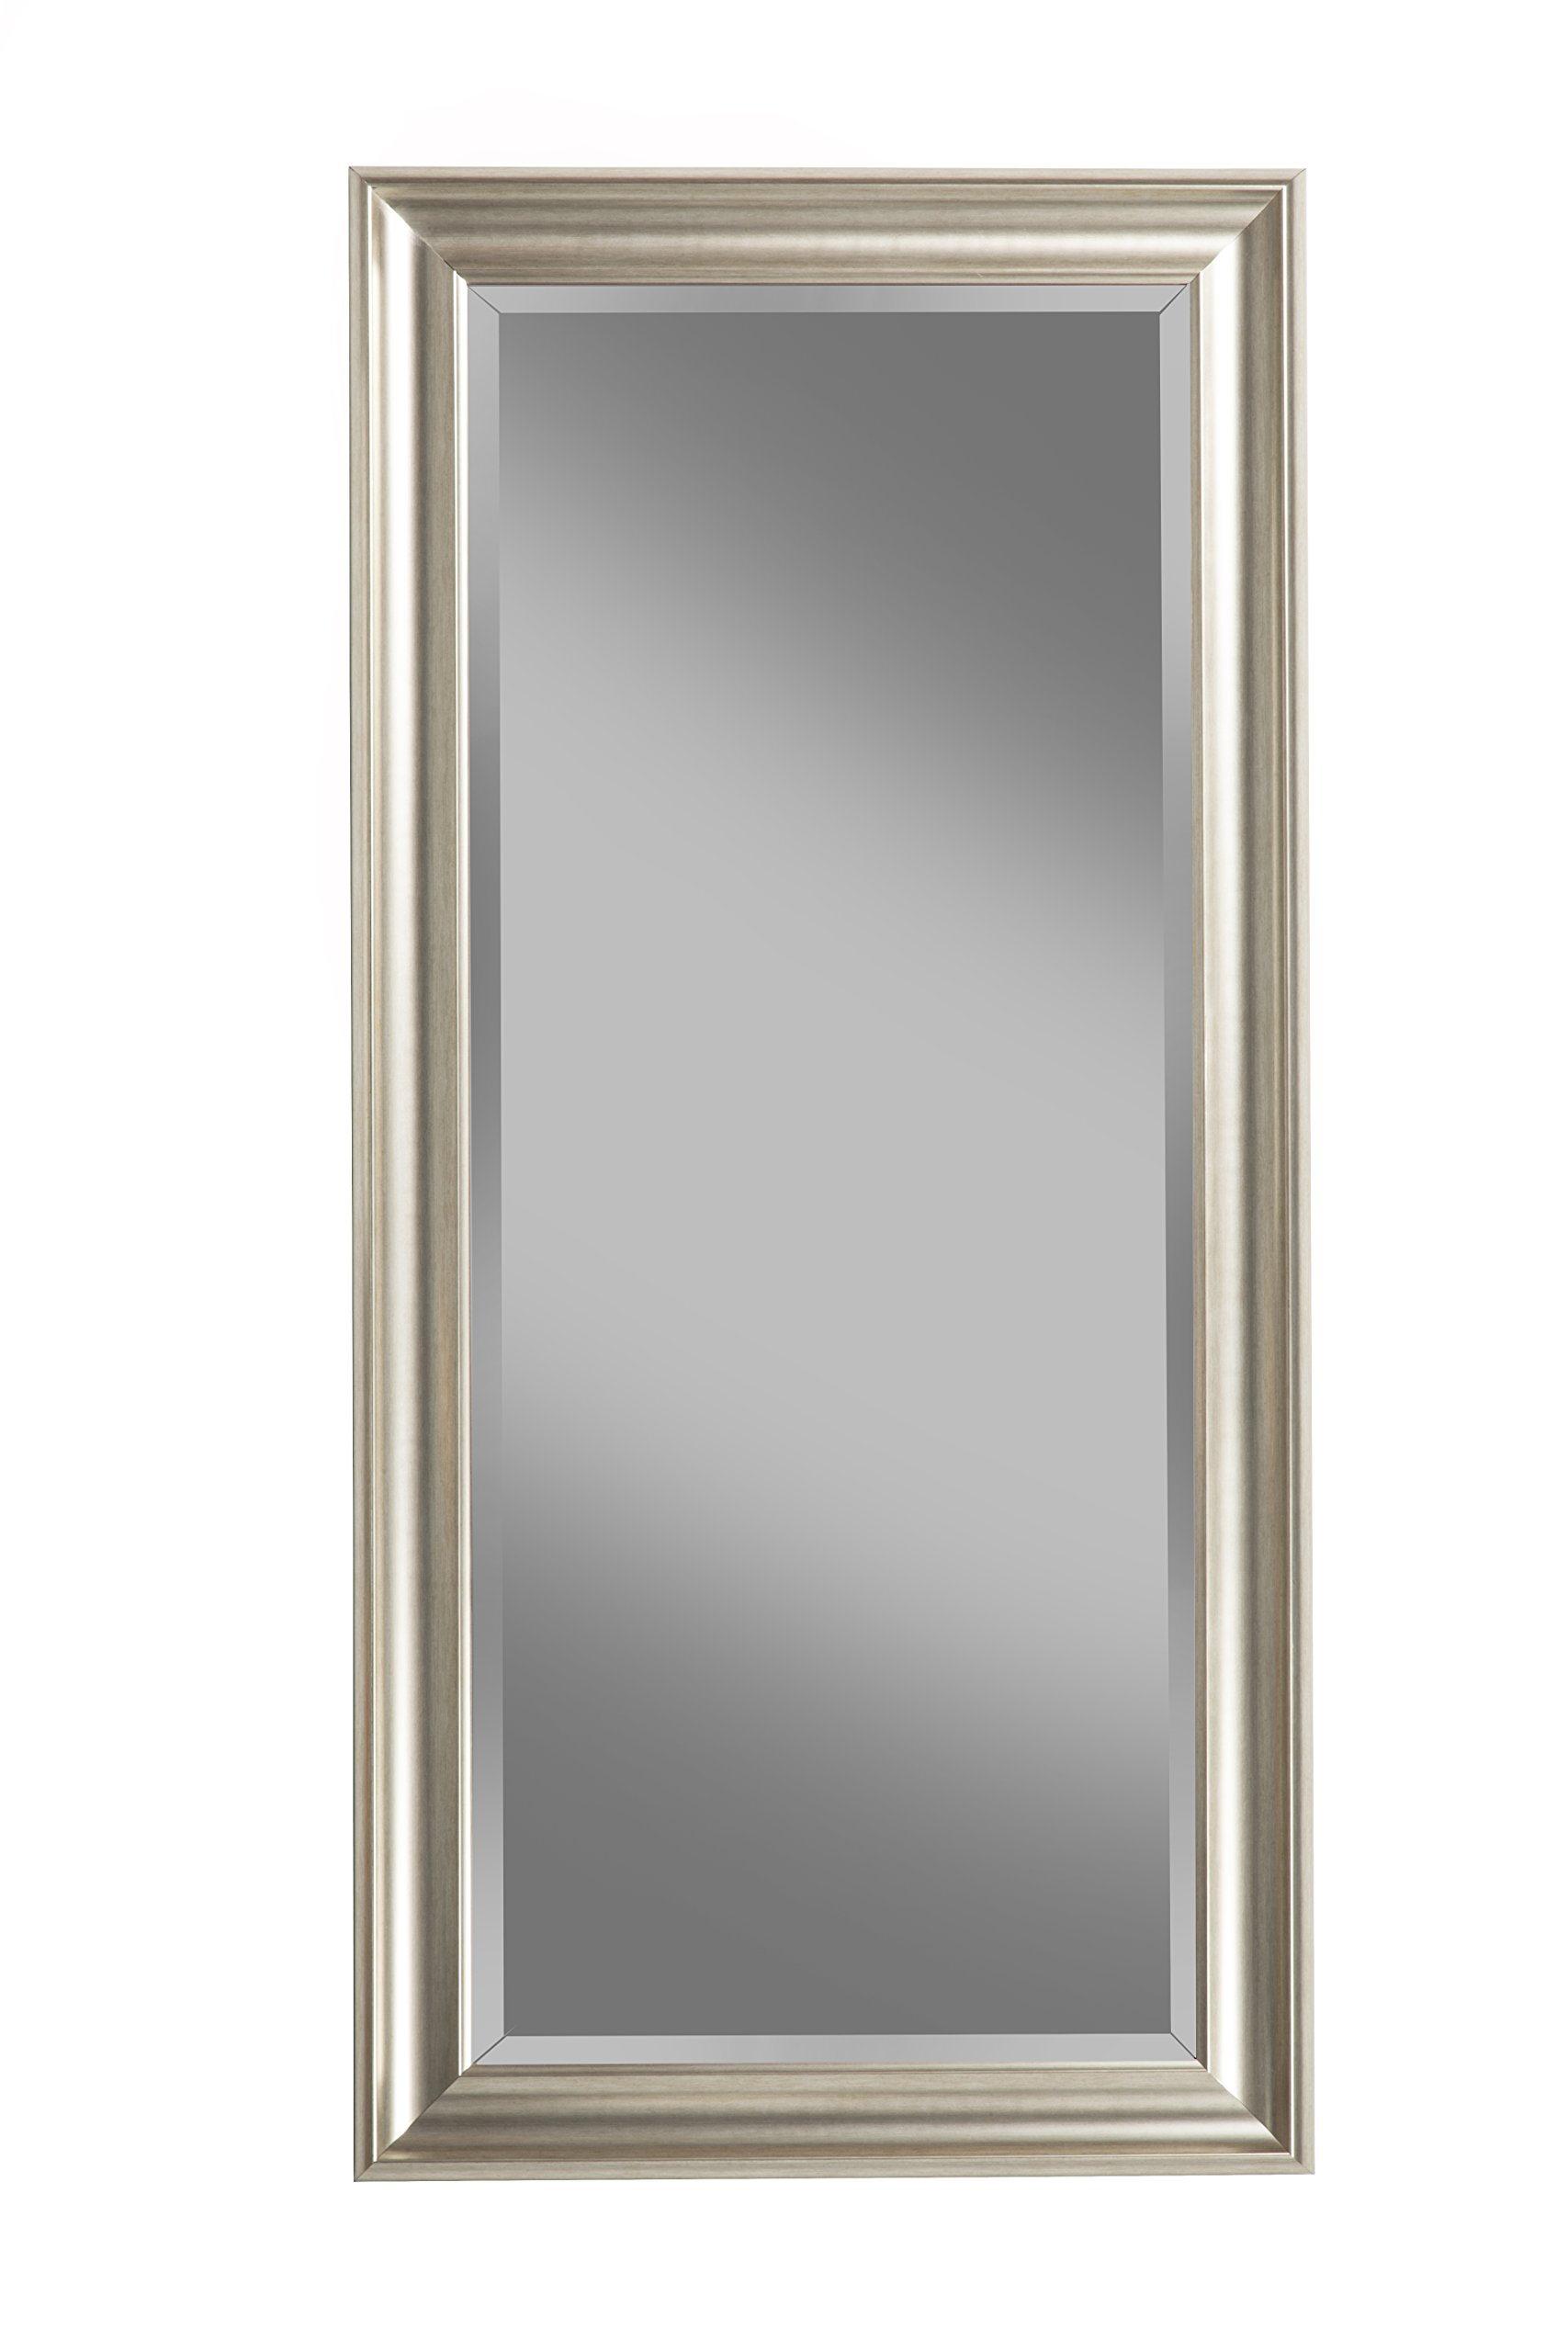 Cheap Champagne Silver Mirror, Find Champagne Silver Mirror In Alie Traditional Beveled Distressed Accent Mirrors (Image 10 of 20)